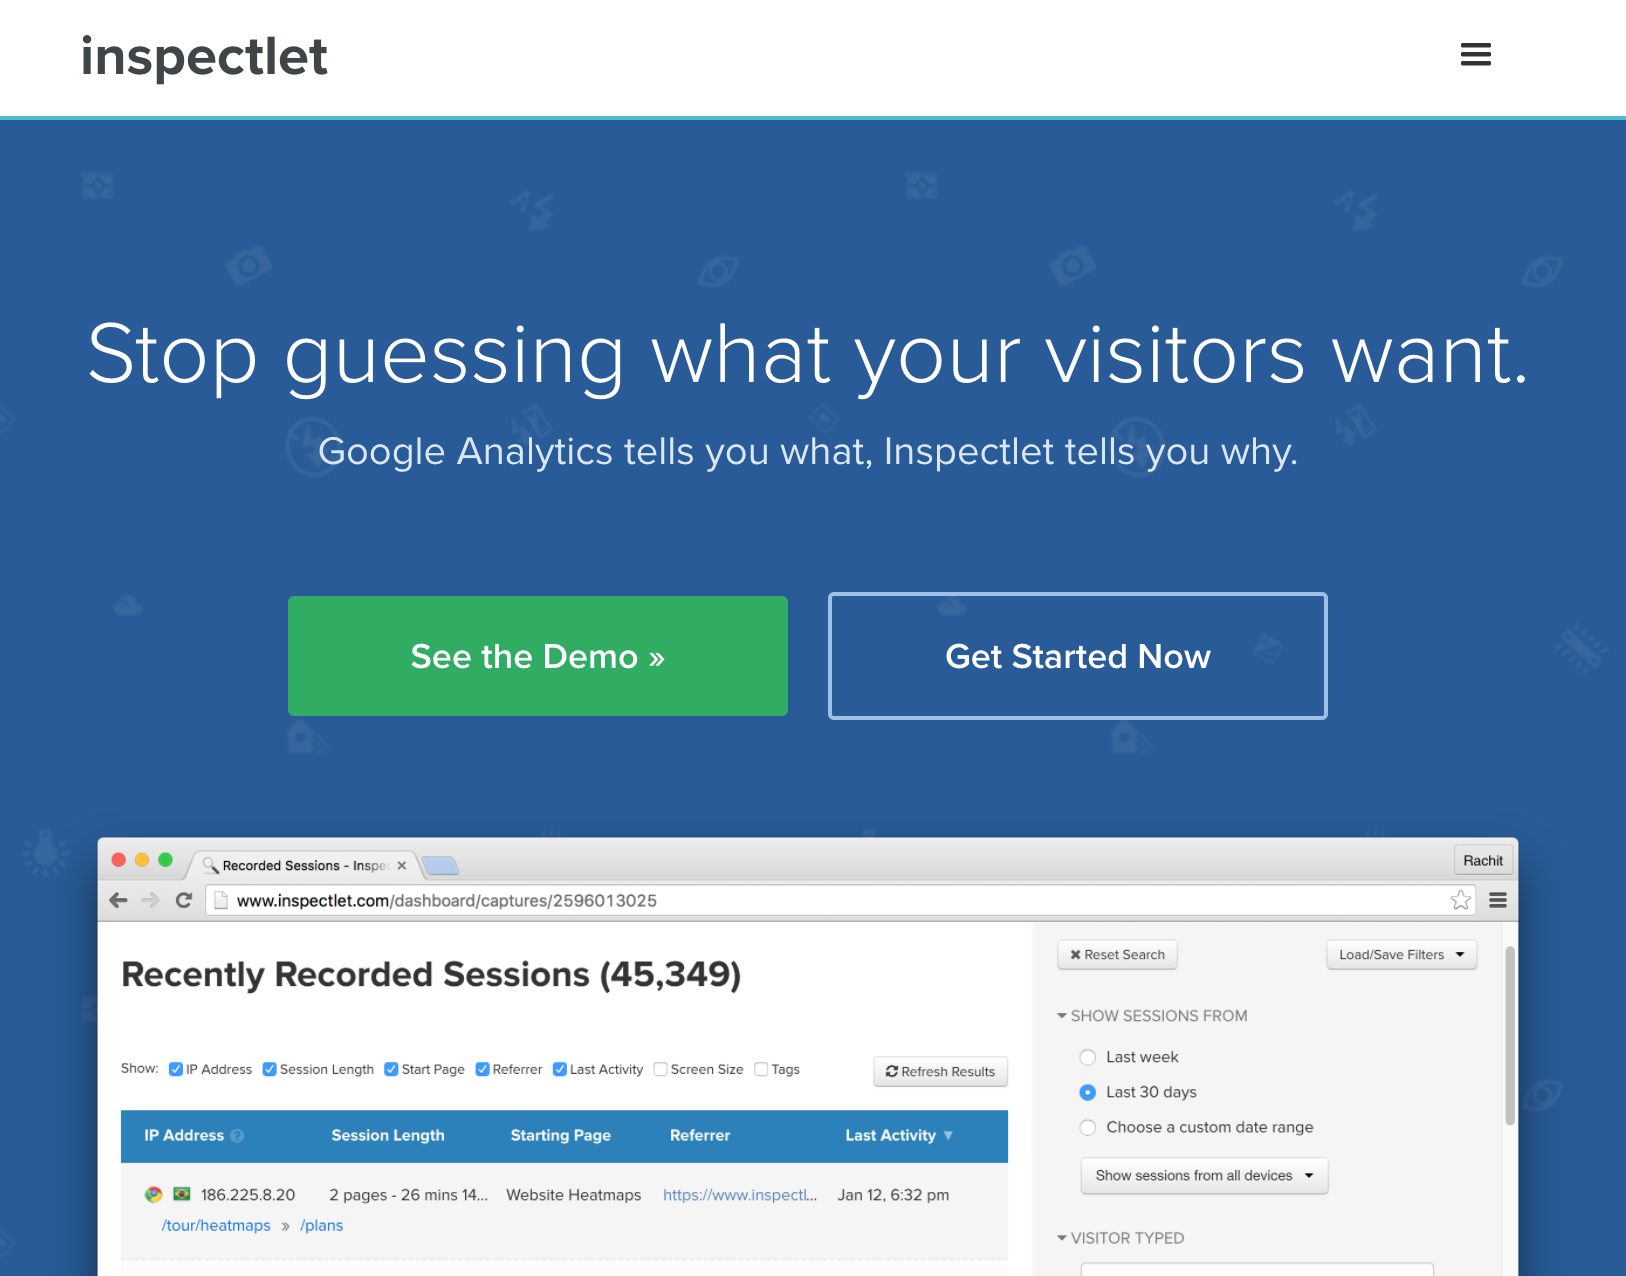 Inspectlet for Conversion Rate Optimization